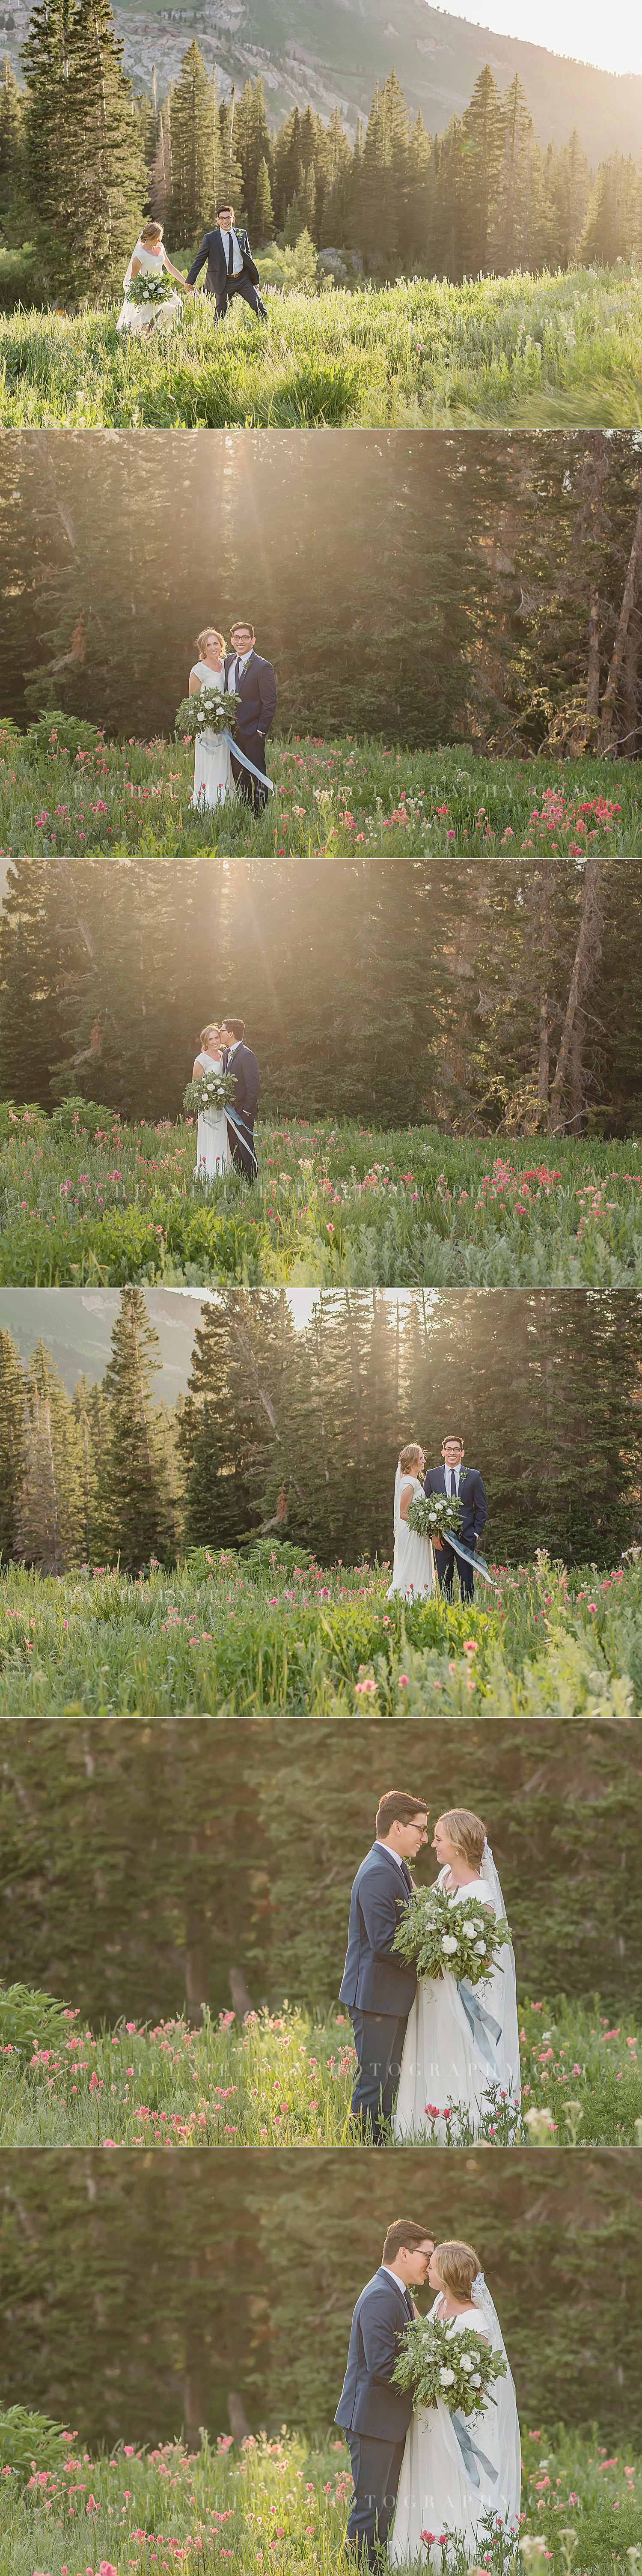 Albion-basin-bride-and-groom-4